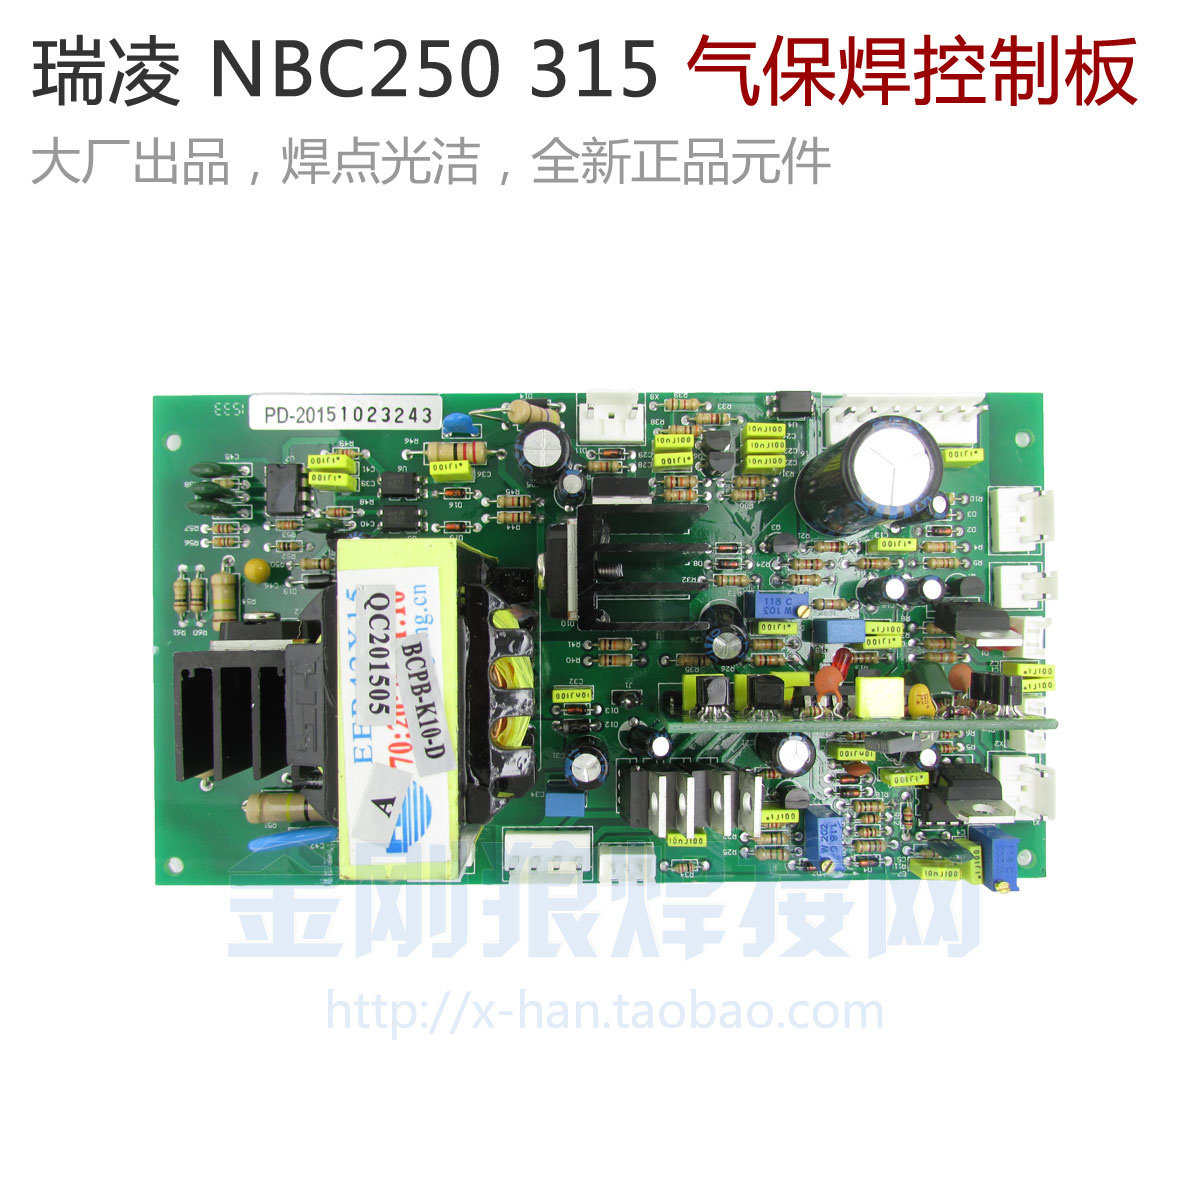 Tools Nbc250 315 Mos Inverter Carbon Dioxide Gas Welder Control Panel Circuit Board Spare No Cost At Any Cost Power Tool Accessories